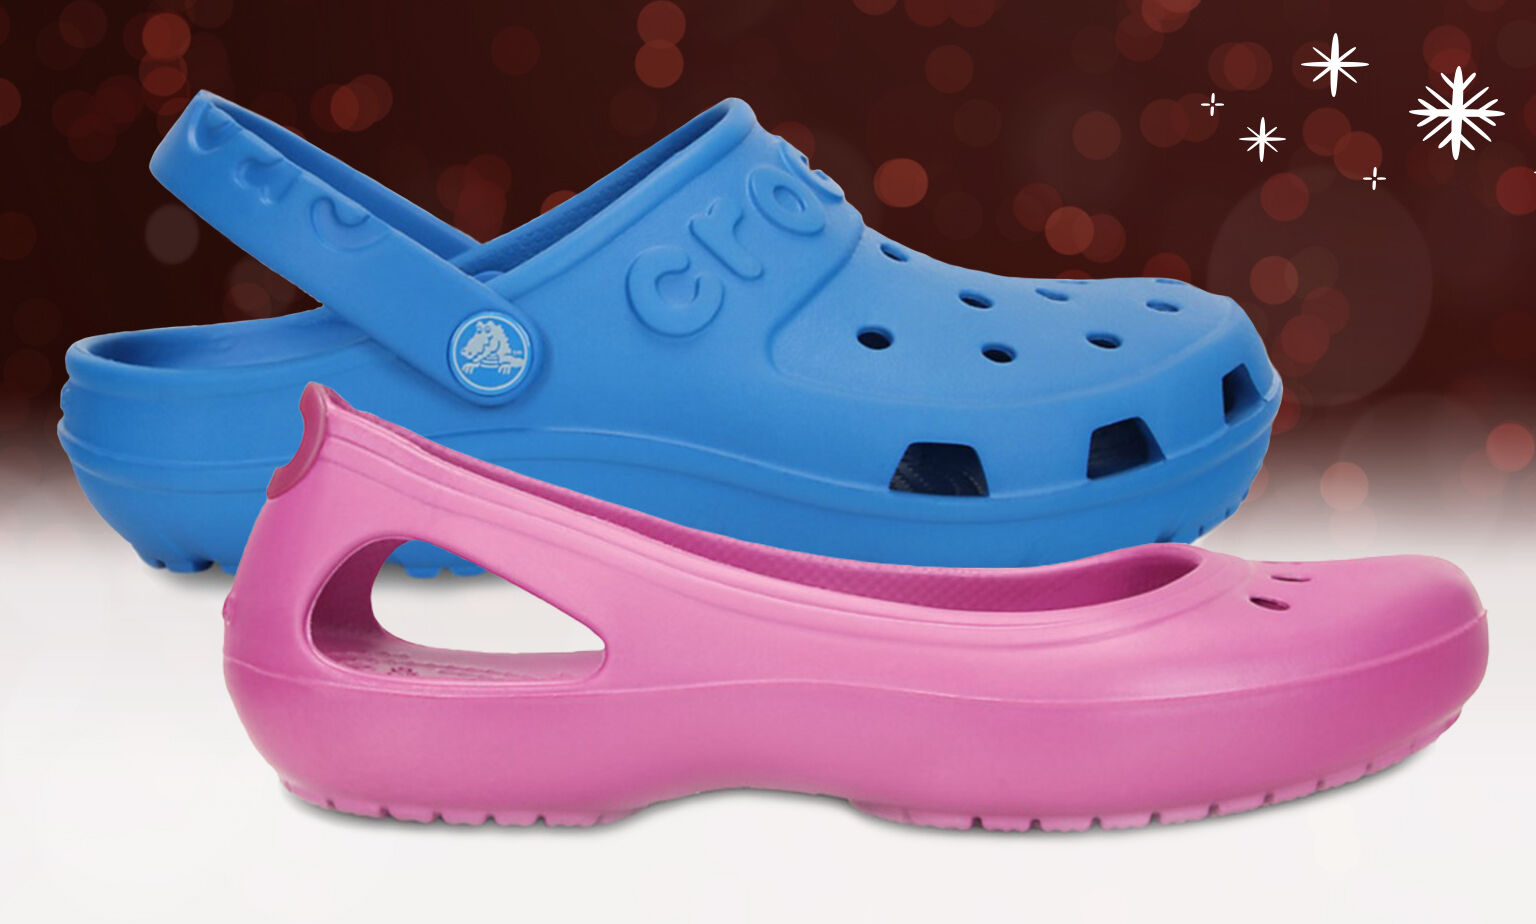 Up to 60% off Crocs Doorbusters